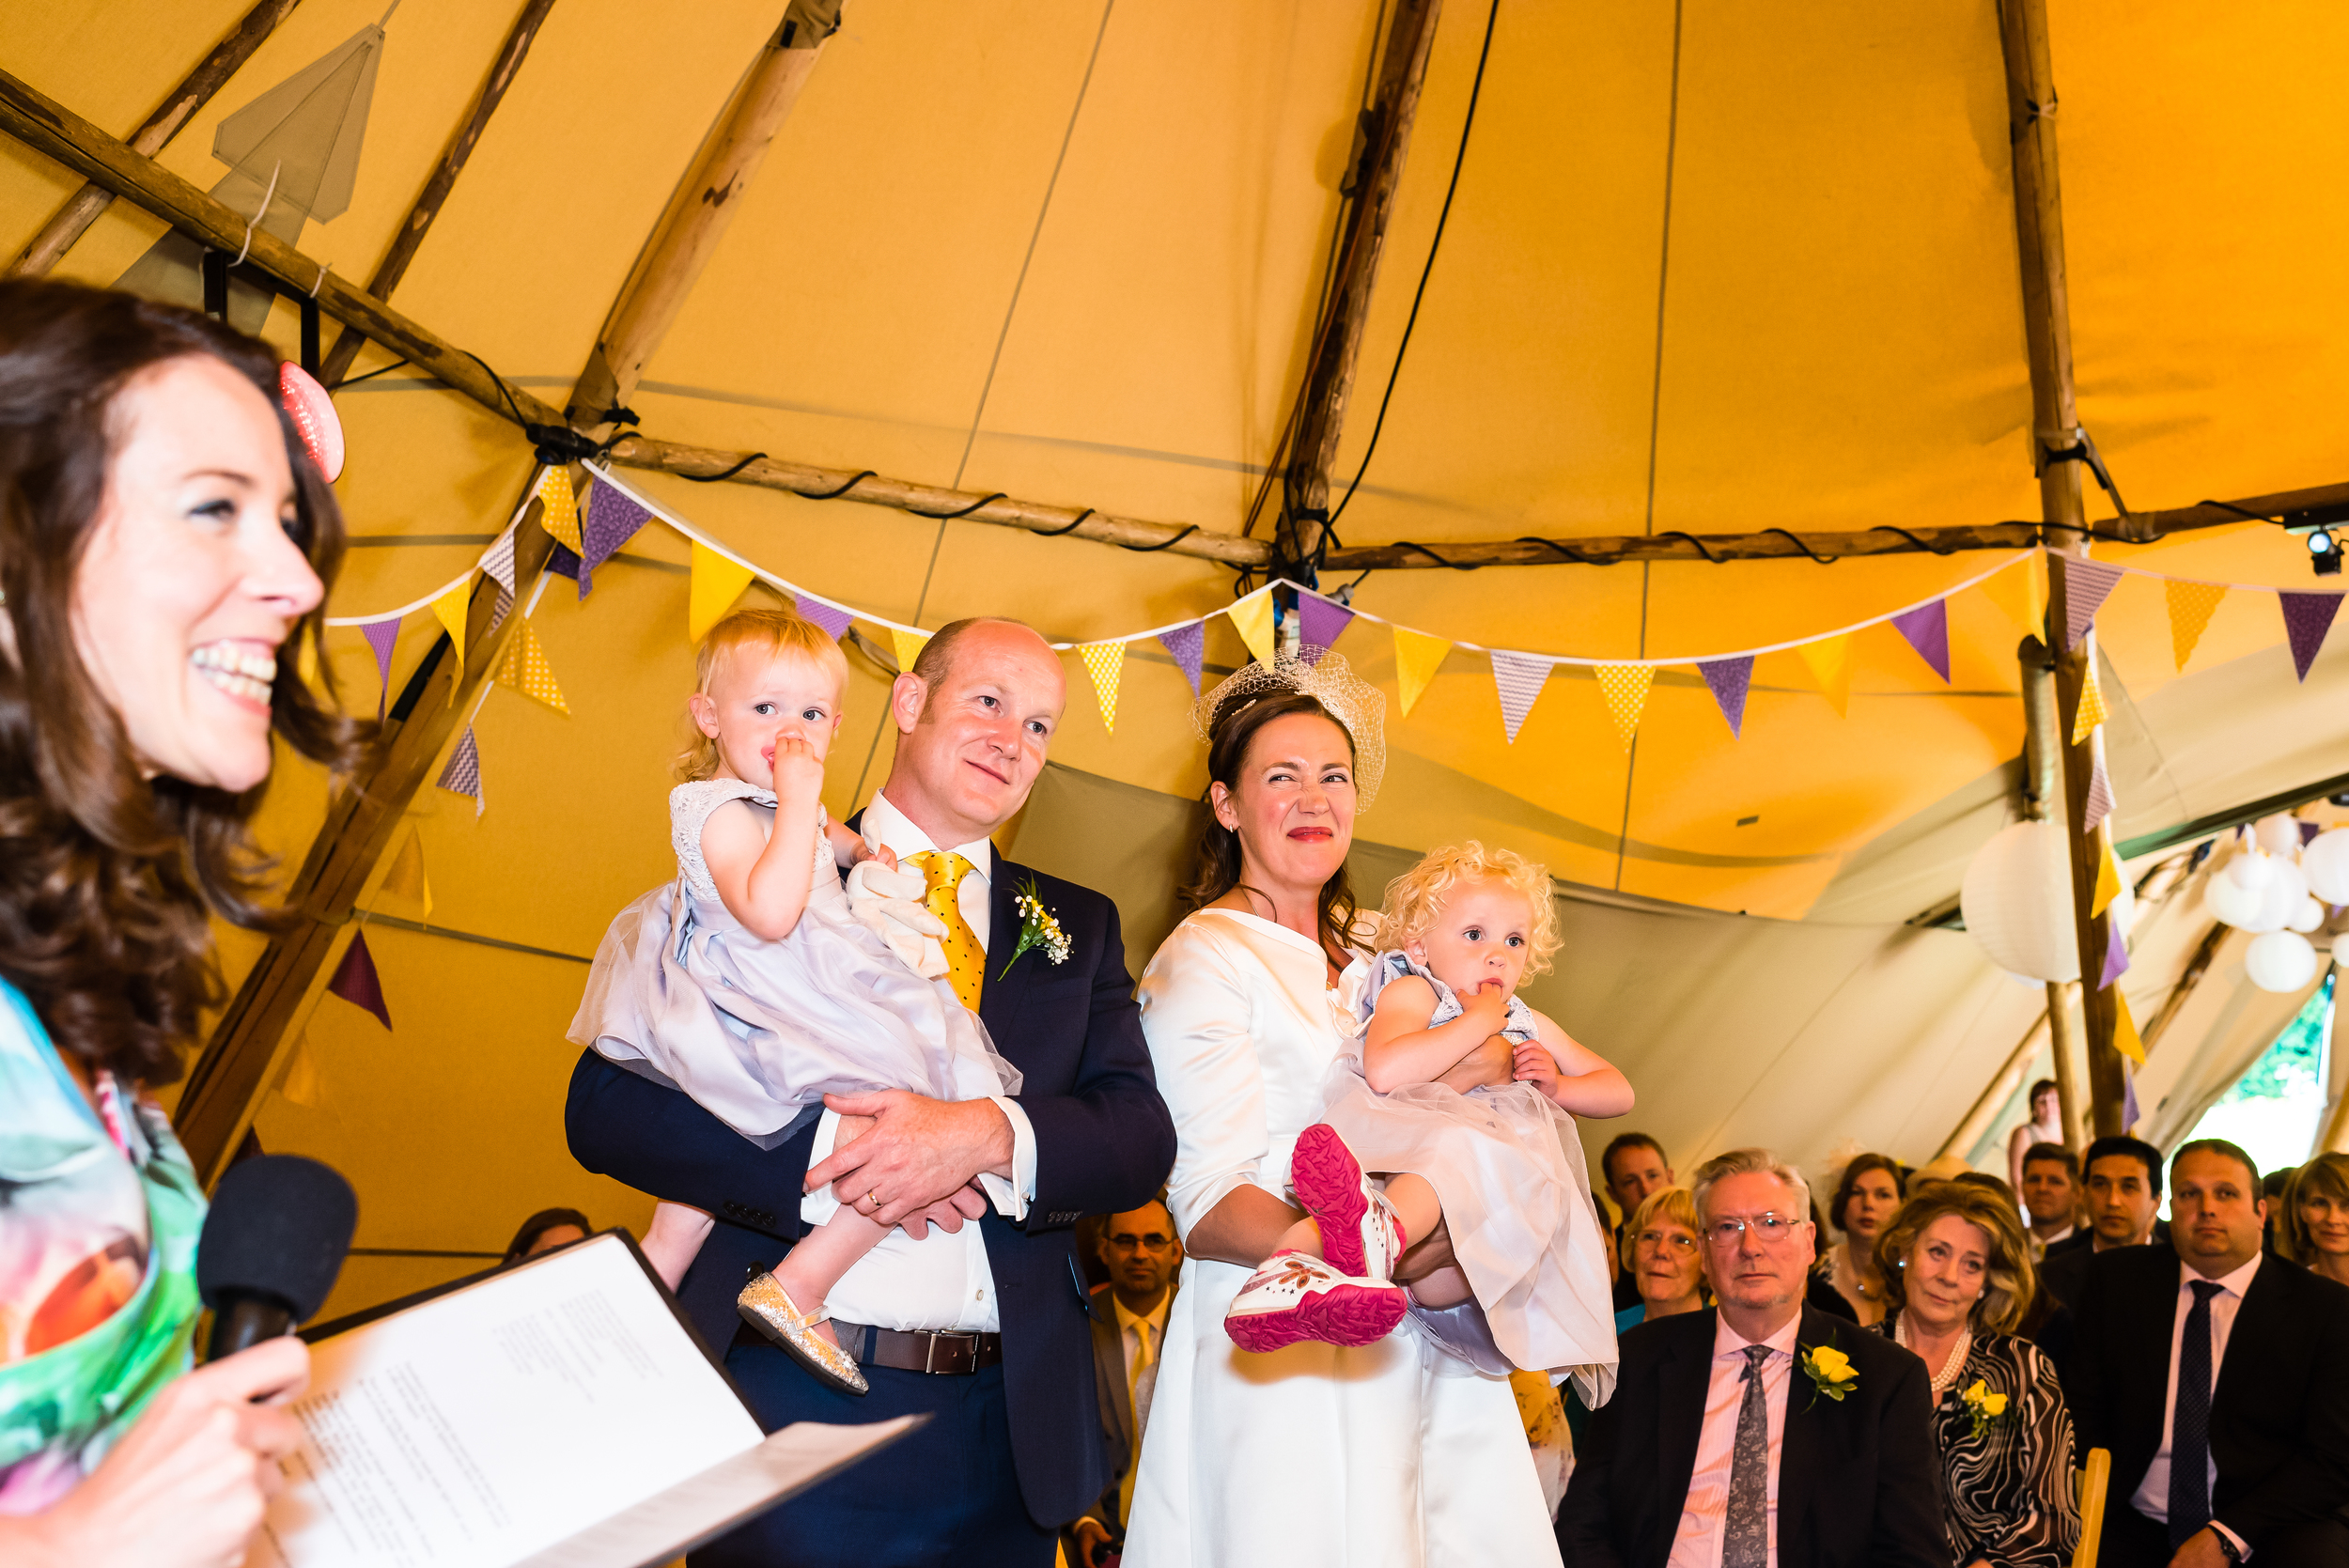 Naming Ceremonies - Naming Celebrants Derbyshire, Nottinghamshire & Leicestershire